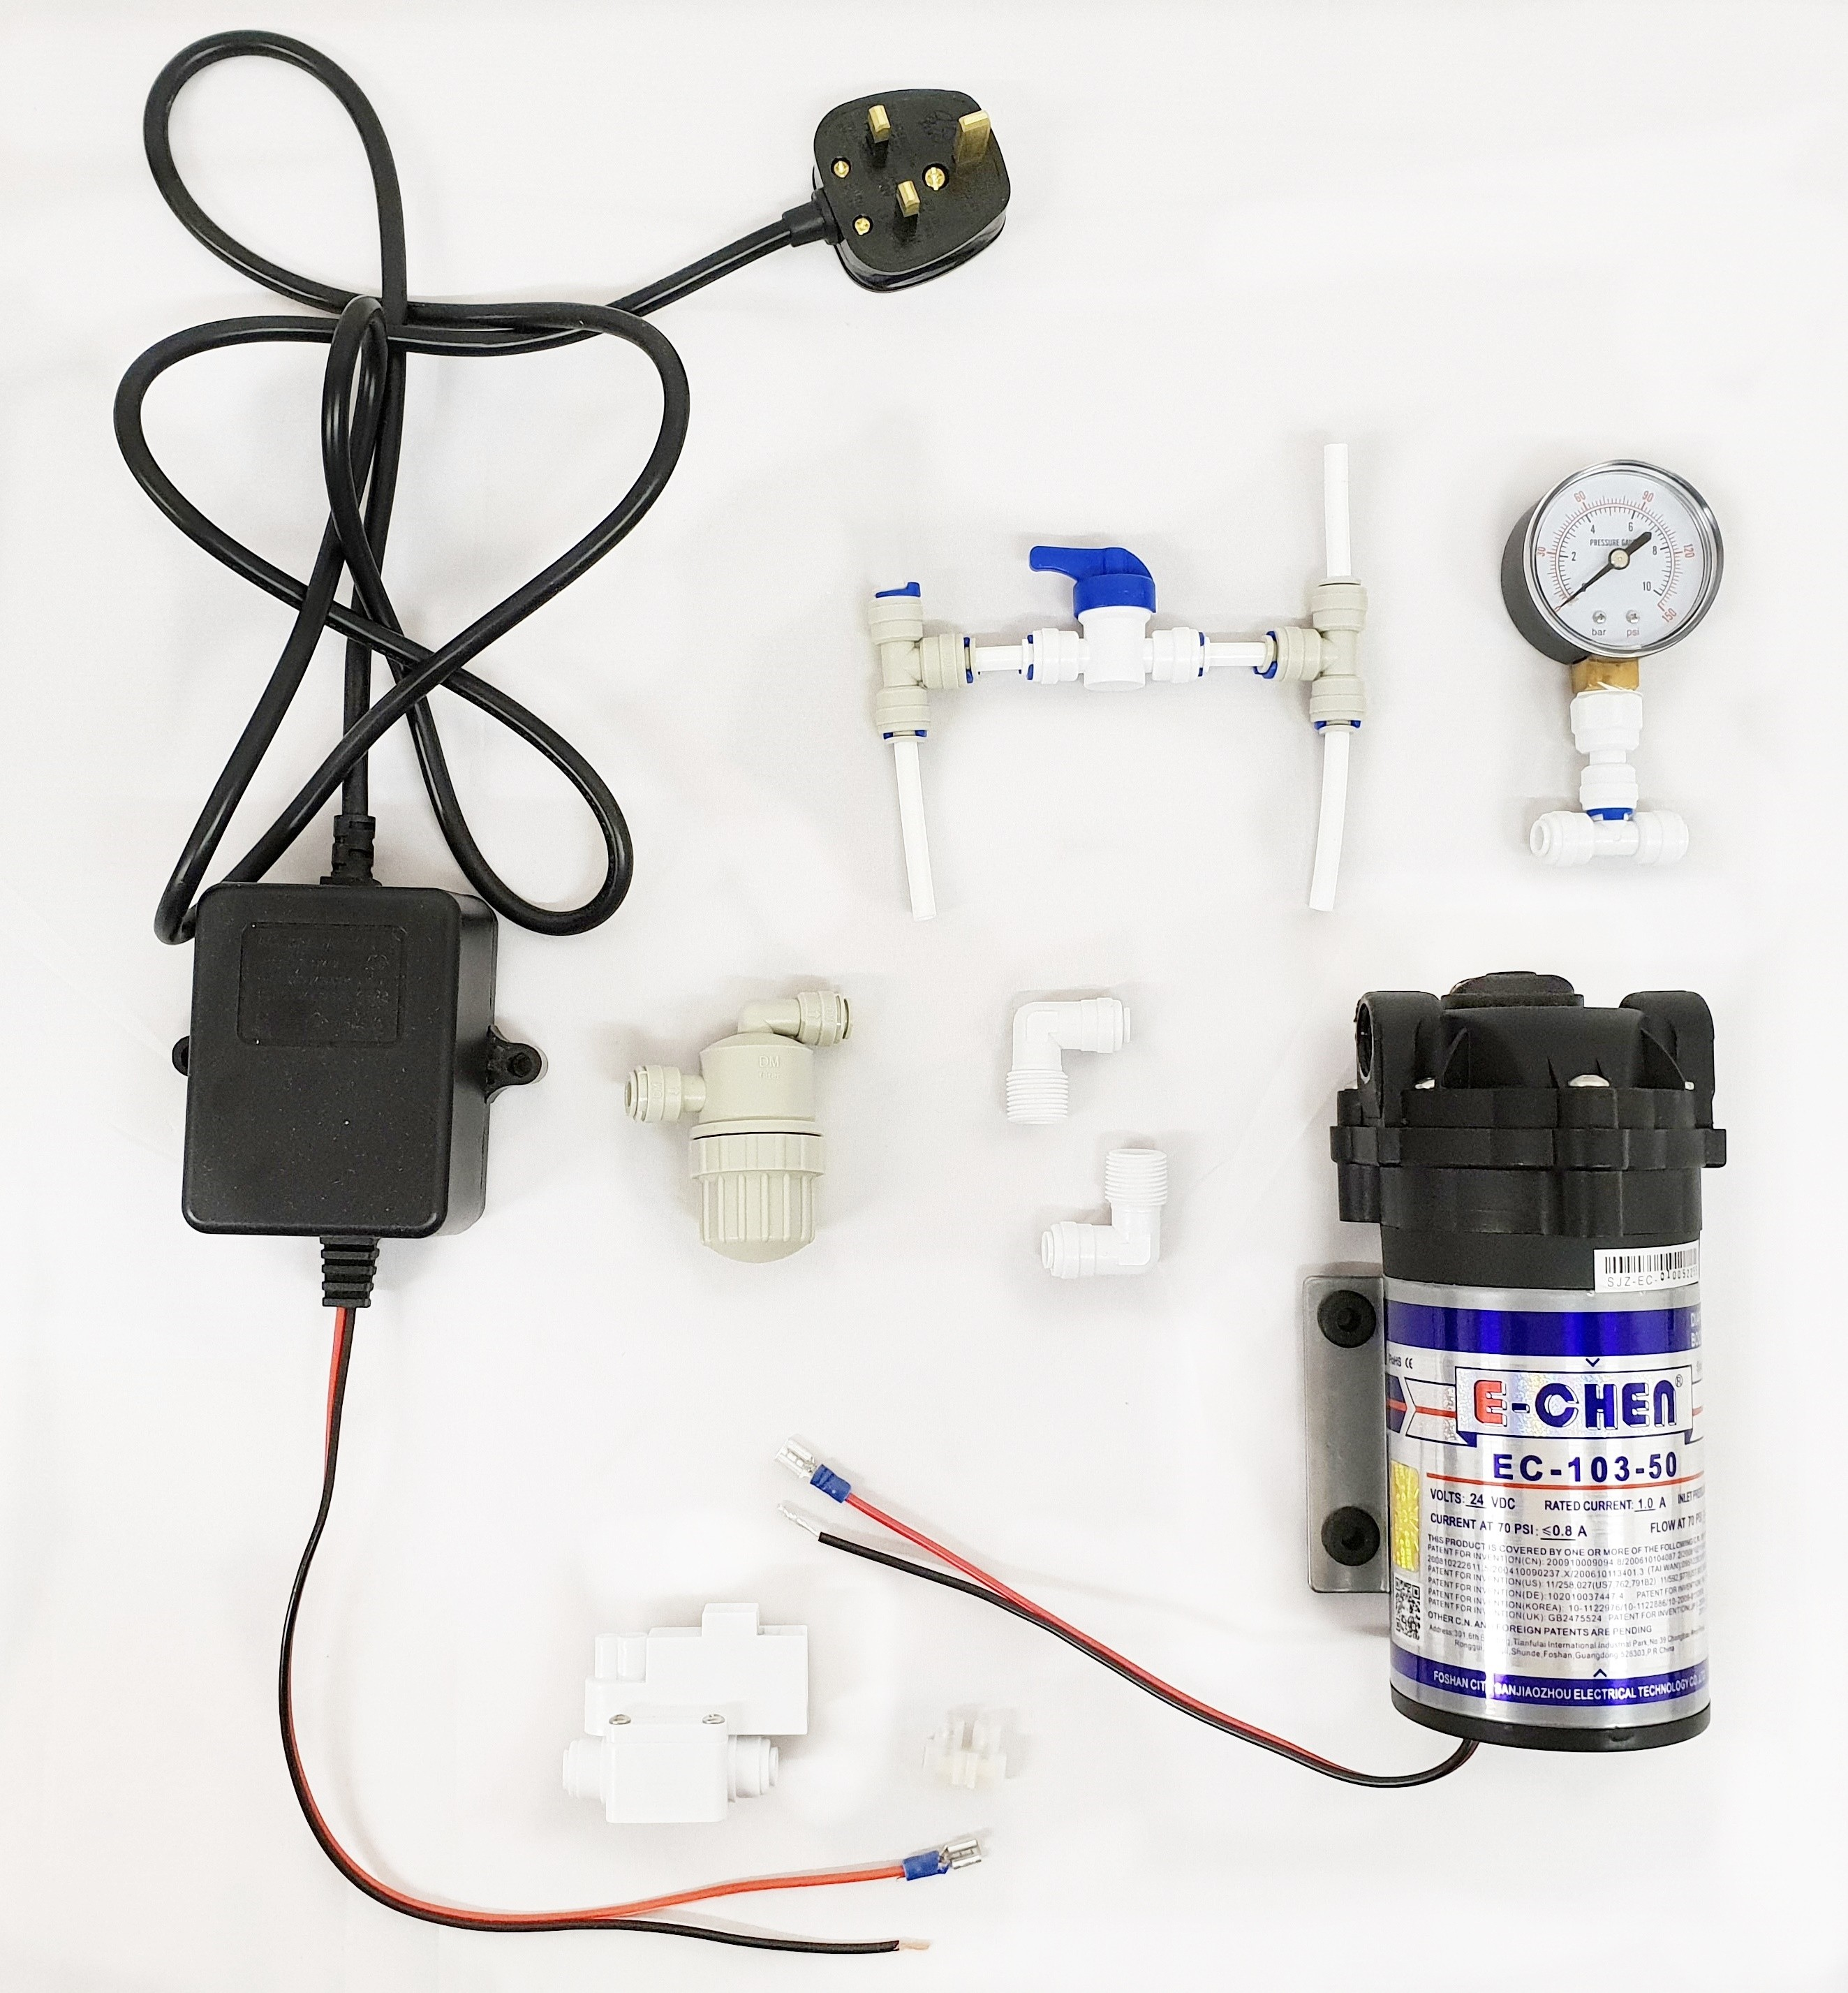 Finerfilters E-Chen Booster Pump Kit including Pump, Pressure Gauge and Pressure Switch (100GPD)